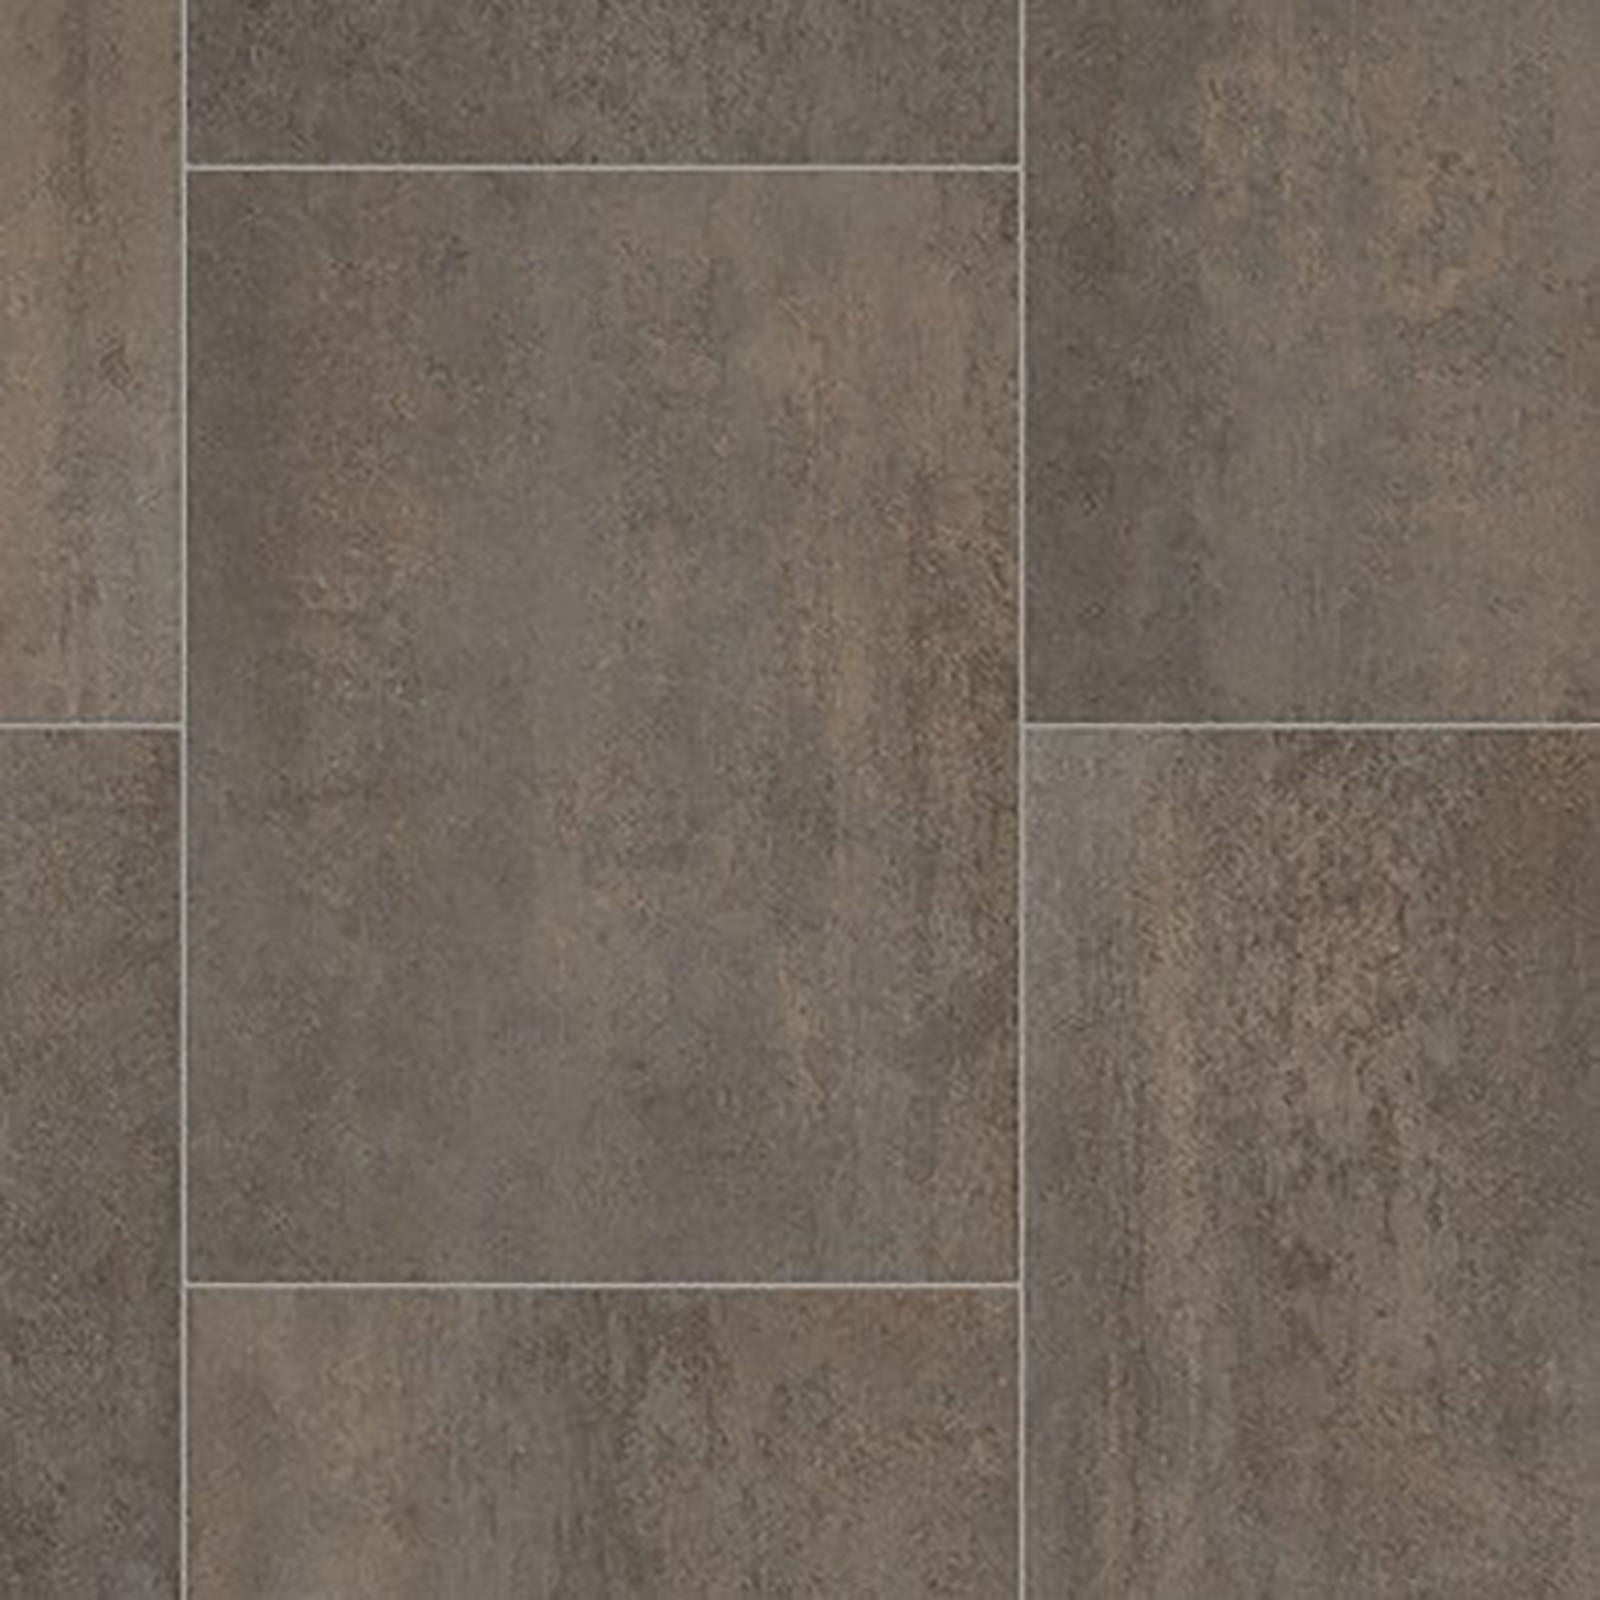 Barcelona 548 Elizabeth Tile Vinyl Flooring - Far